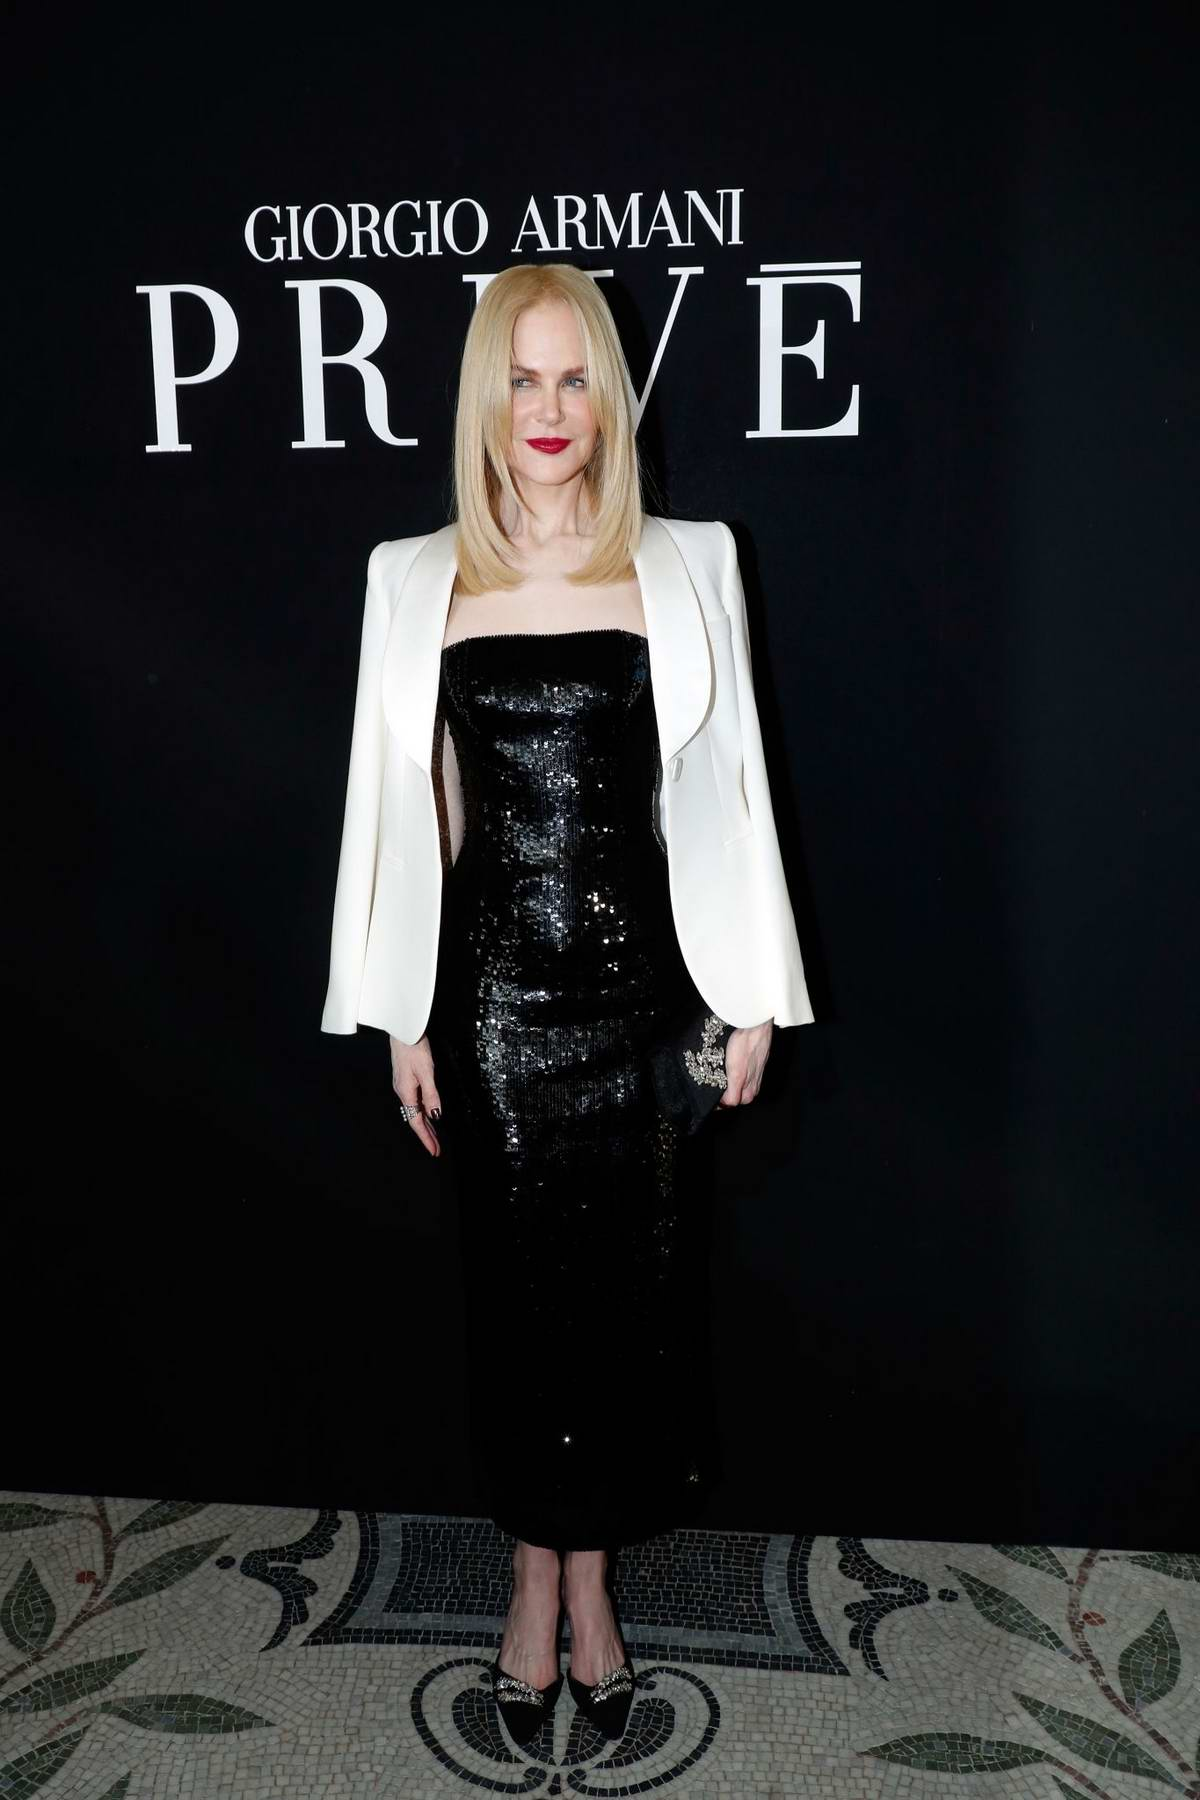 Nicole Kidman attends the Giorgio Armani Prive Haute Couture Fall/Winter 2019/2020 show during Paris Fashion Week in Paris, France